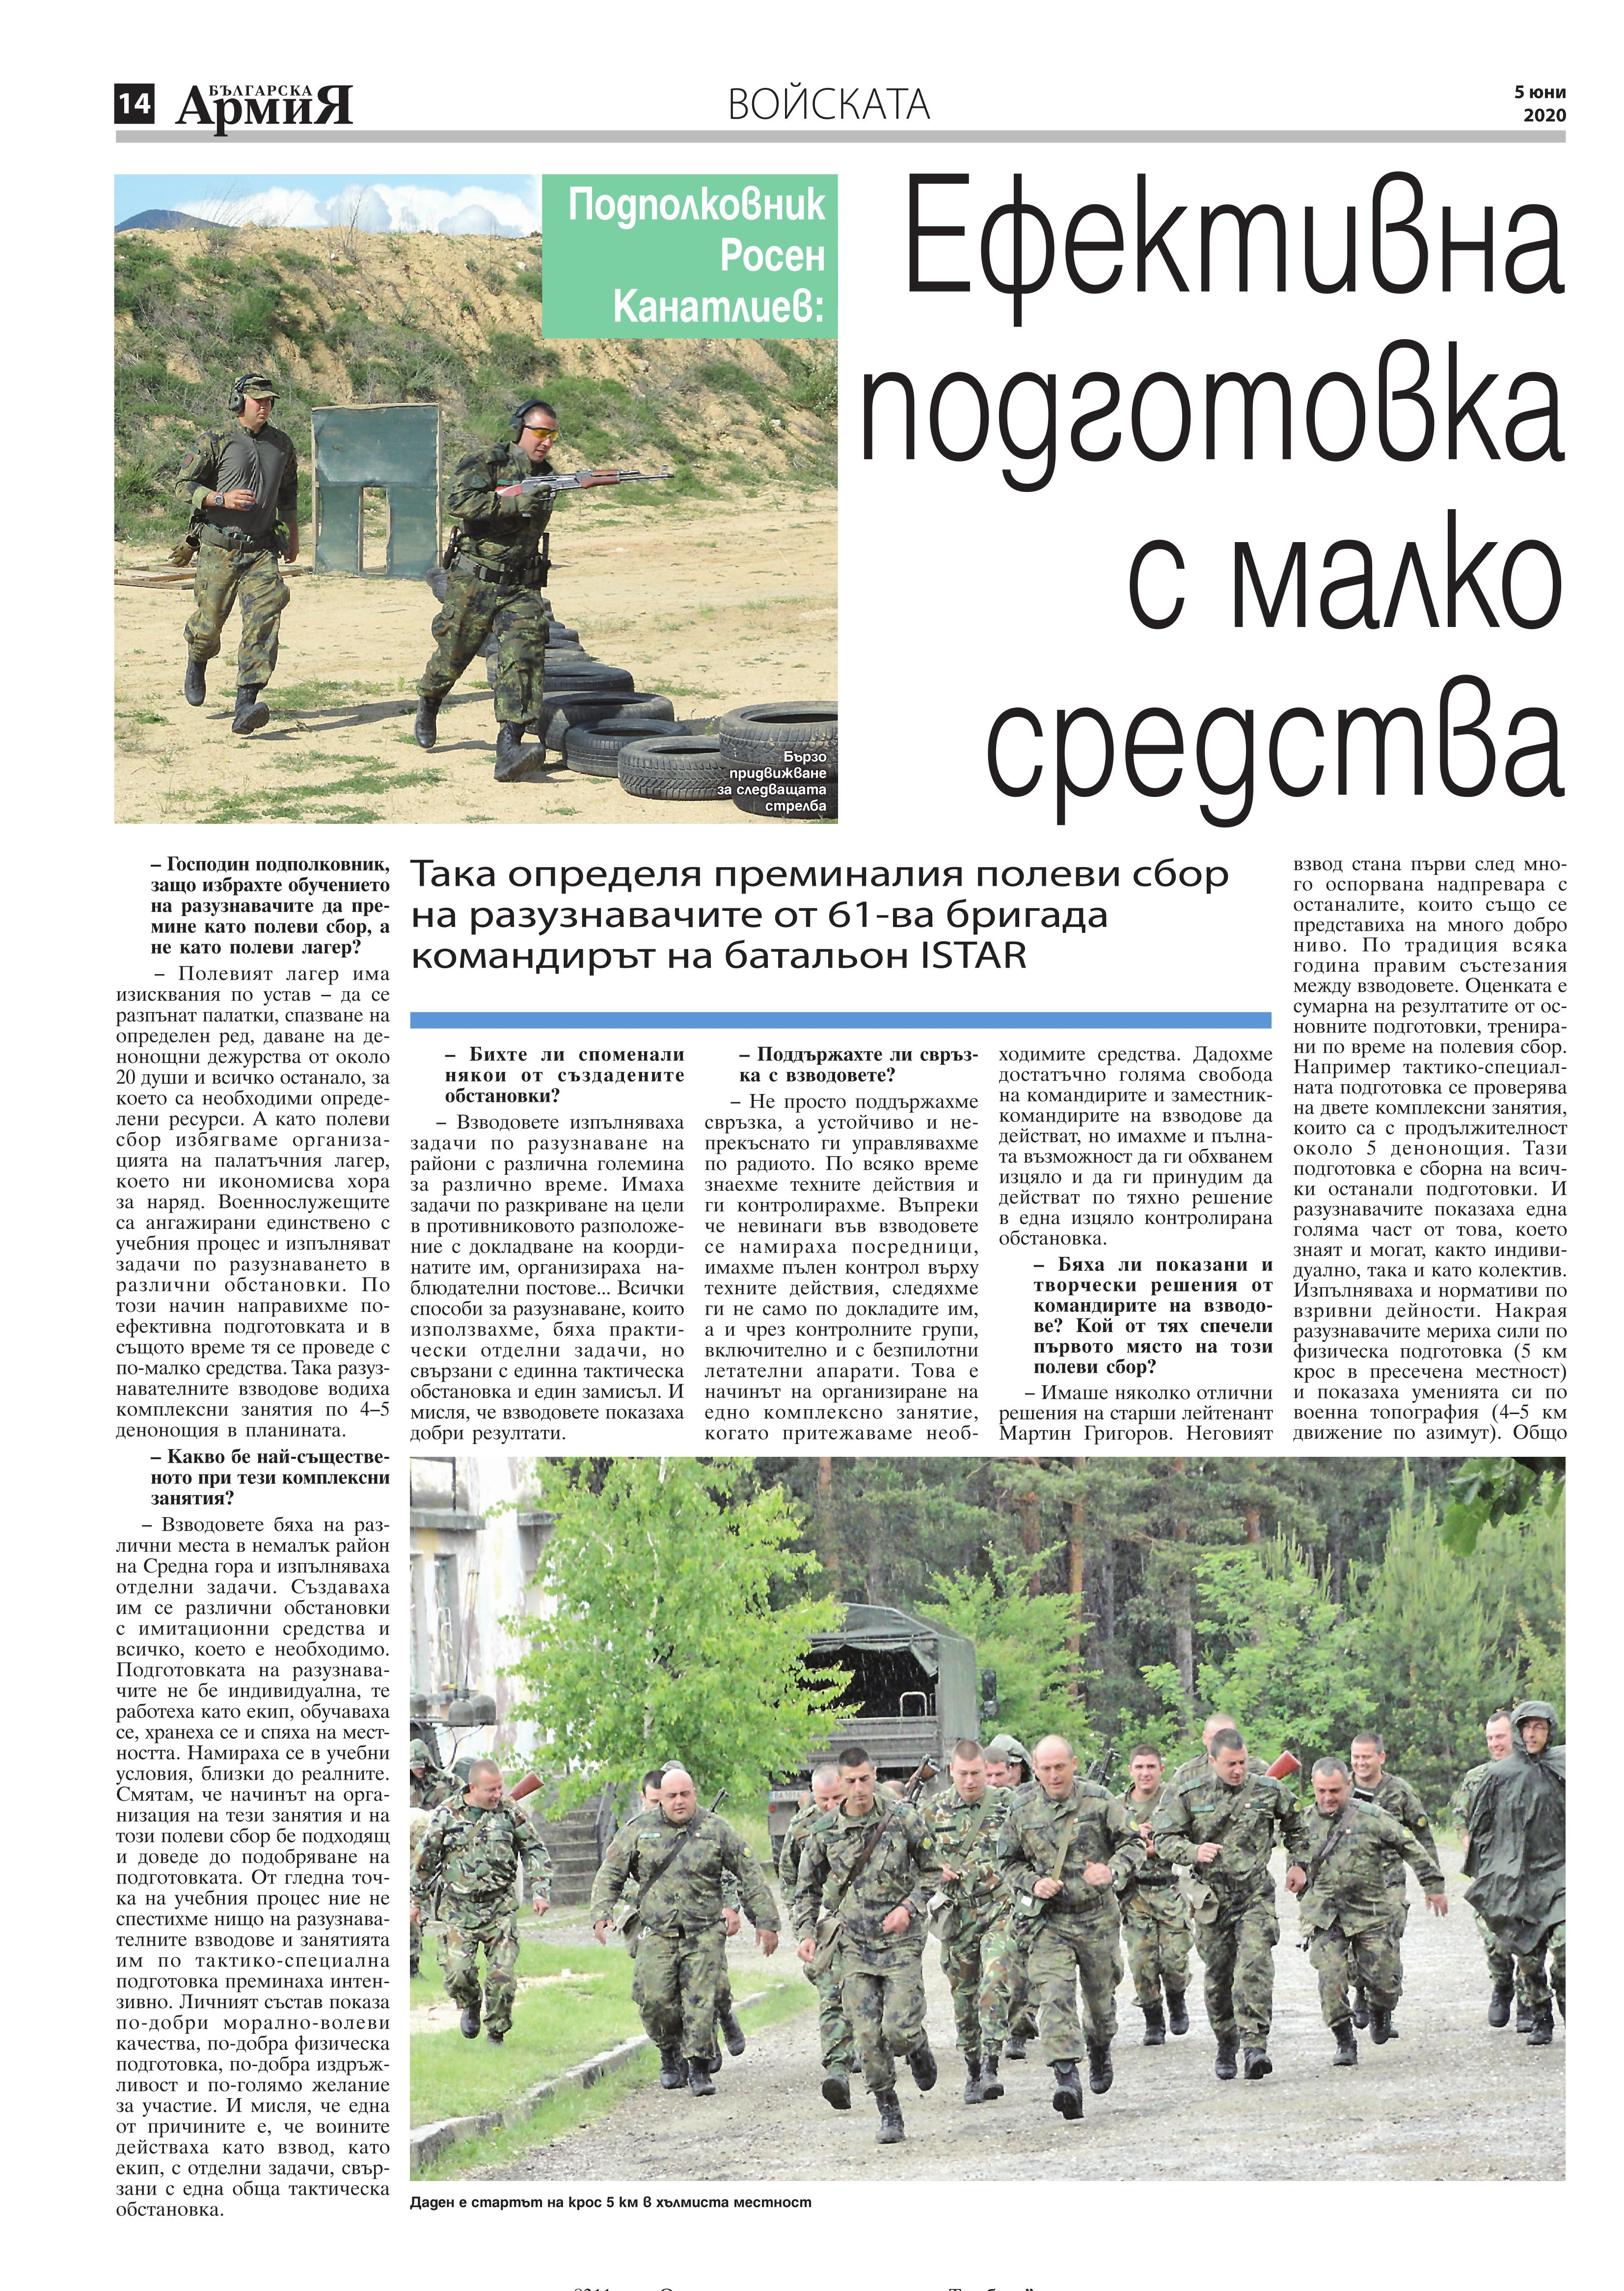 https://armymedia.bg/wp-content/uploads/2015/06/14.page1_-142.jpg